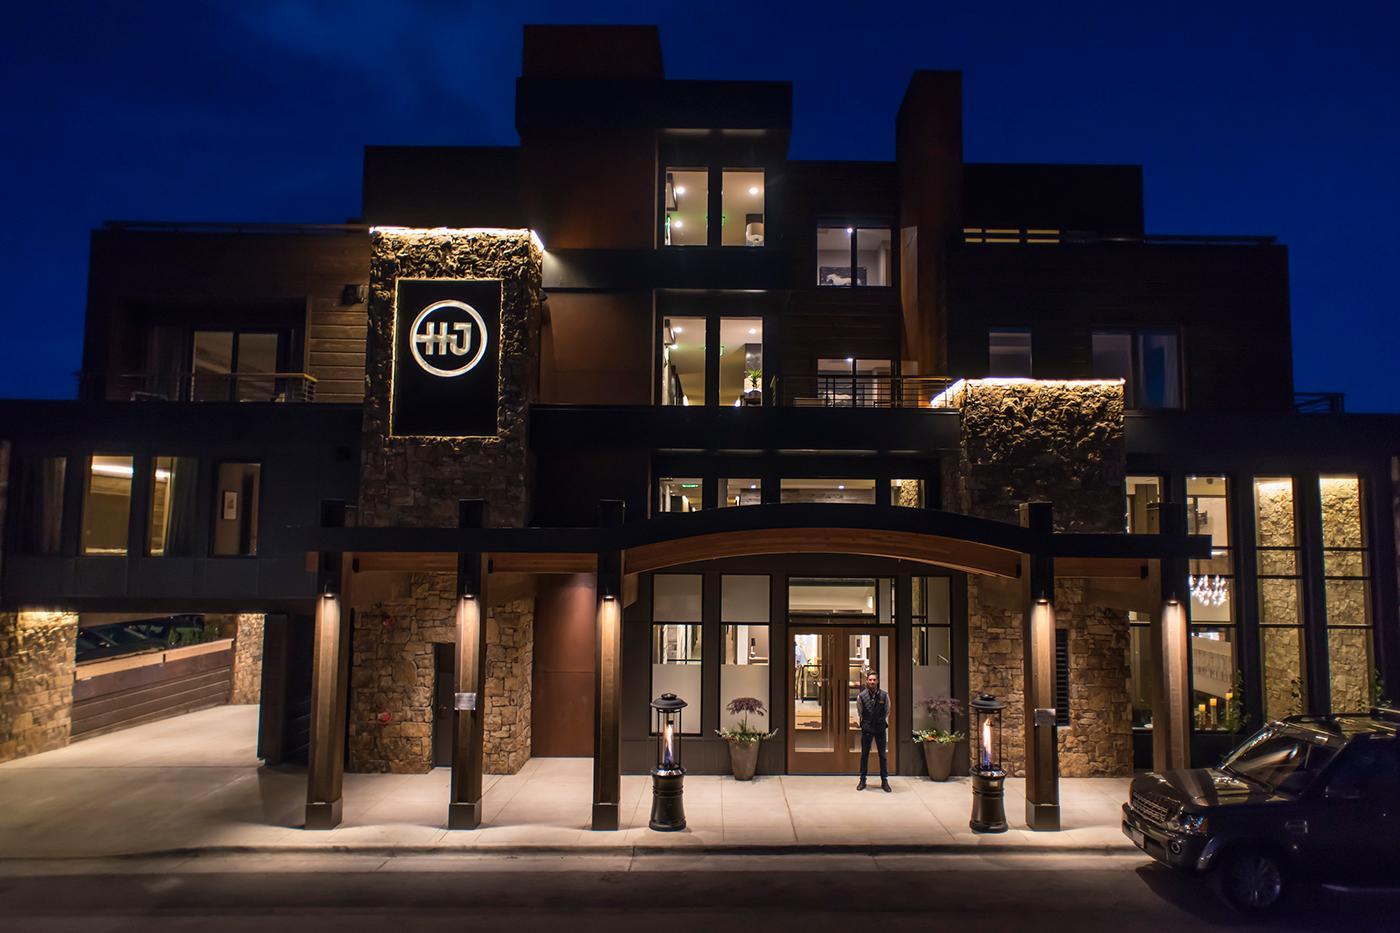 Opened in the summer of 2015, Hotel Jackson offers luxury lodging in the heart of downtown Jackson Hole